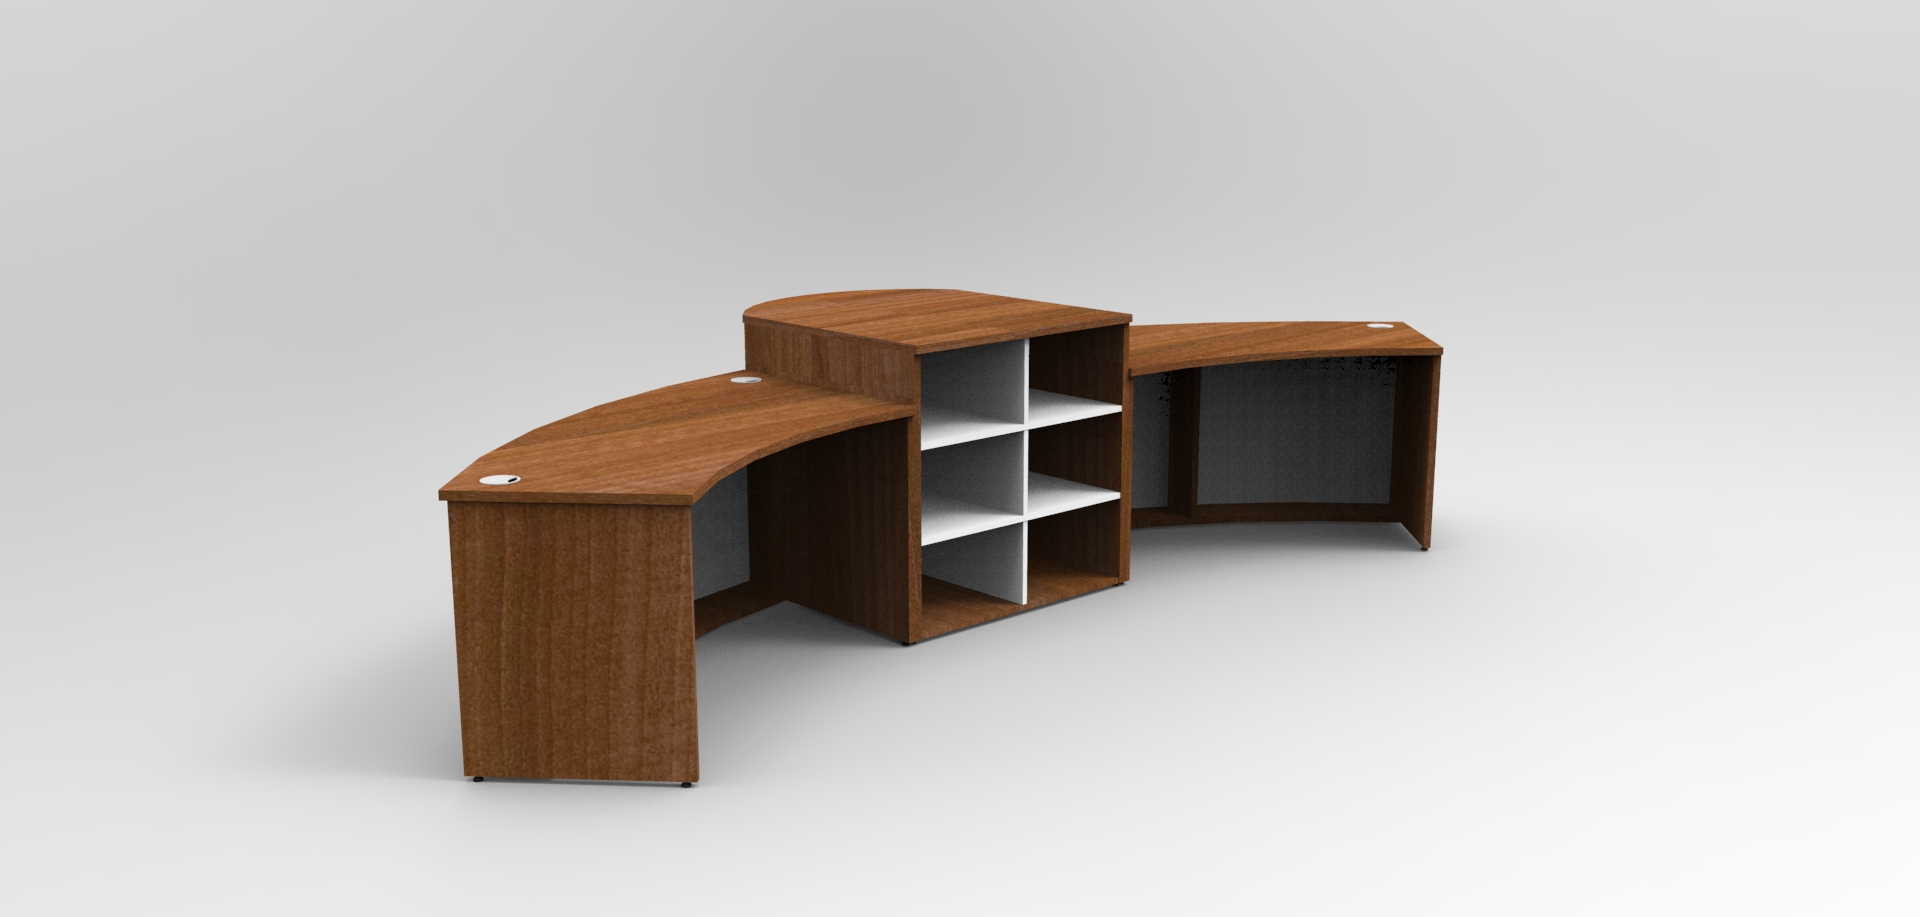 Image 504A - Aero reception desk with a high centre signing counter showing the shelf storage to the rear.